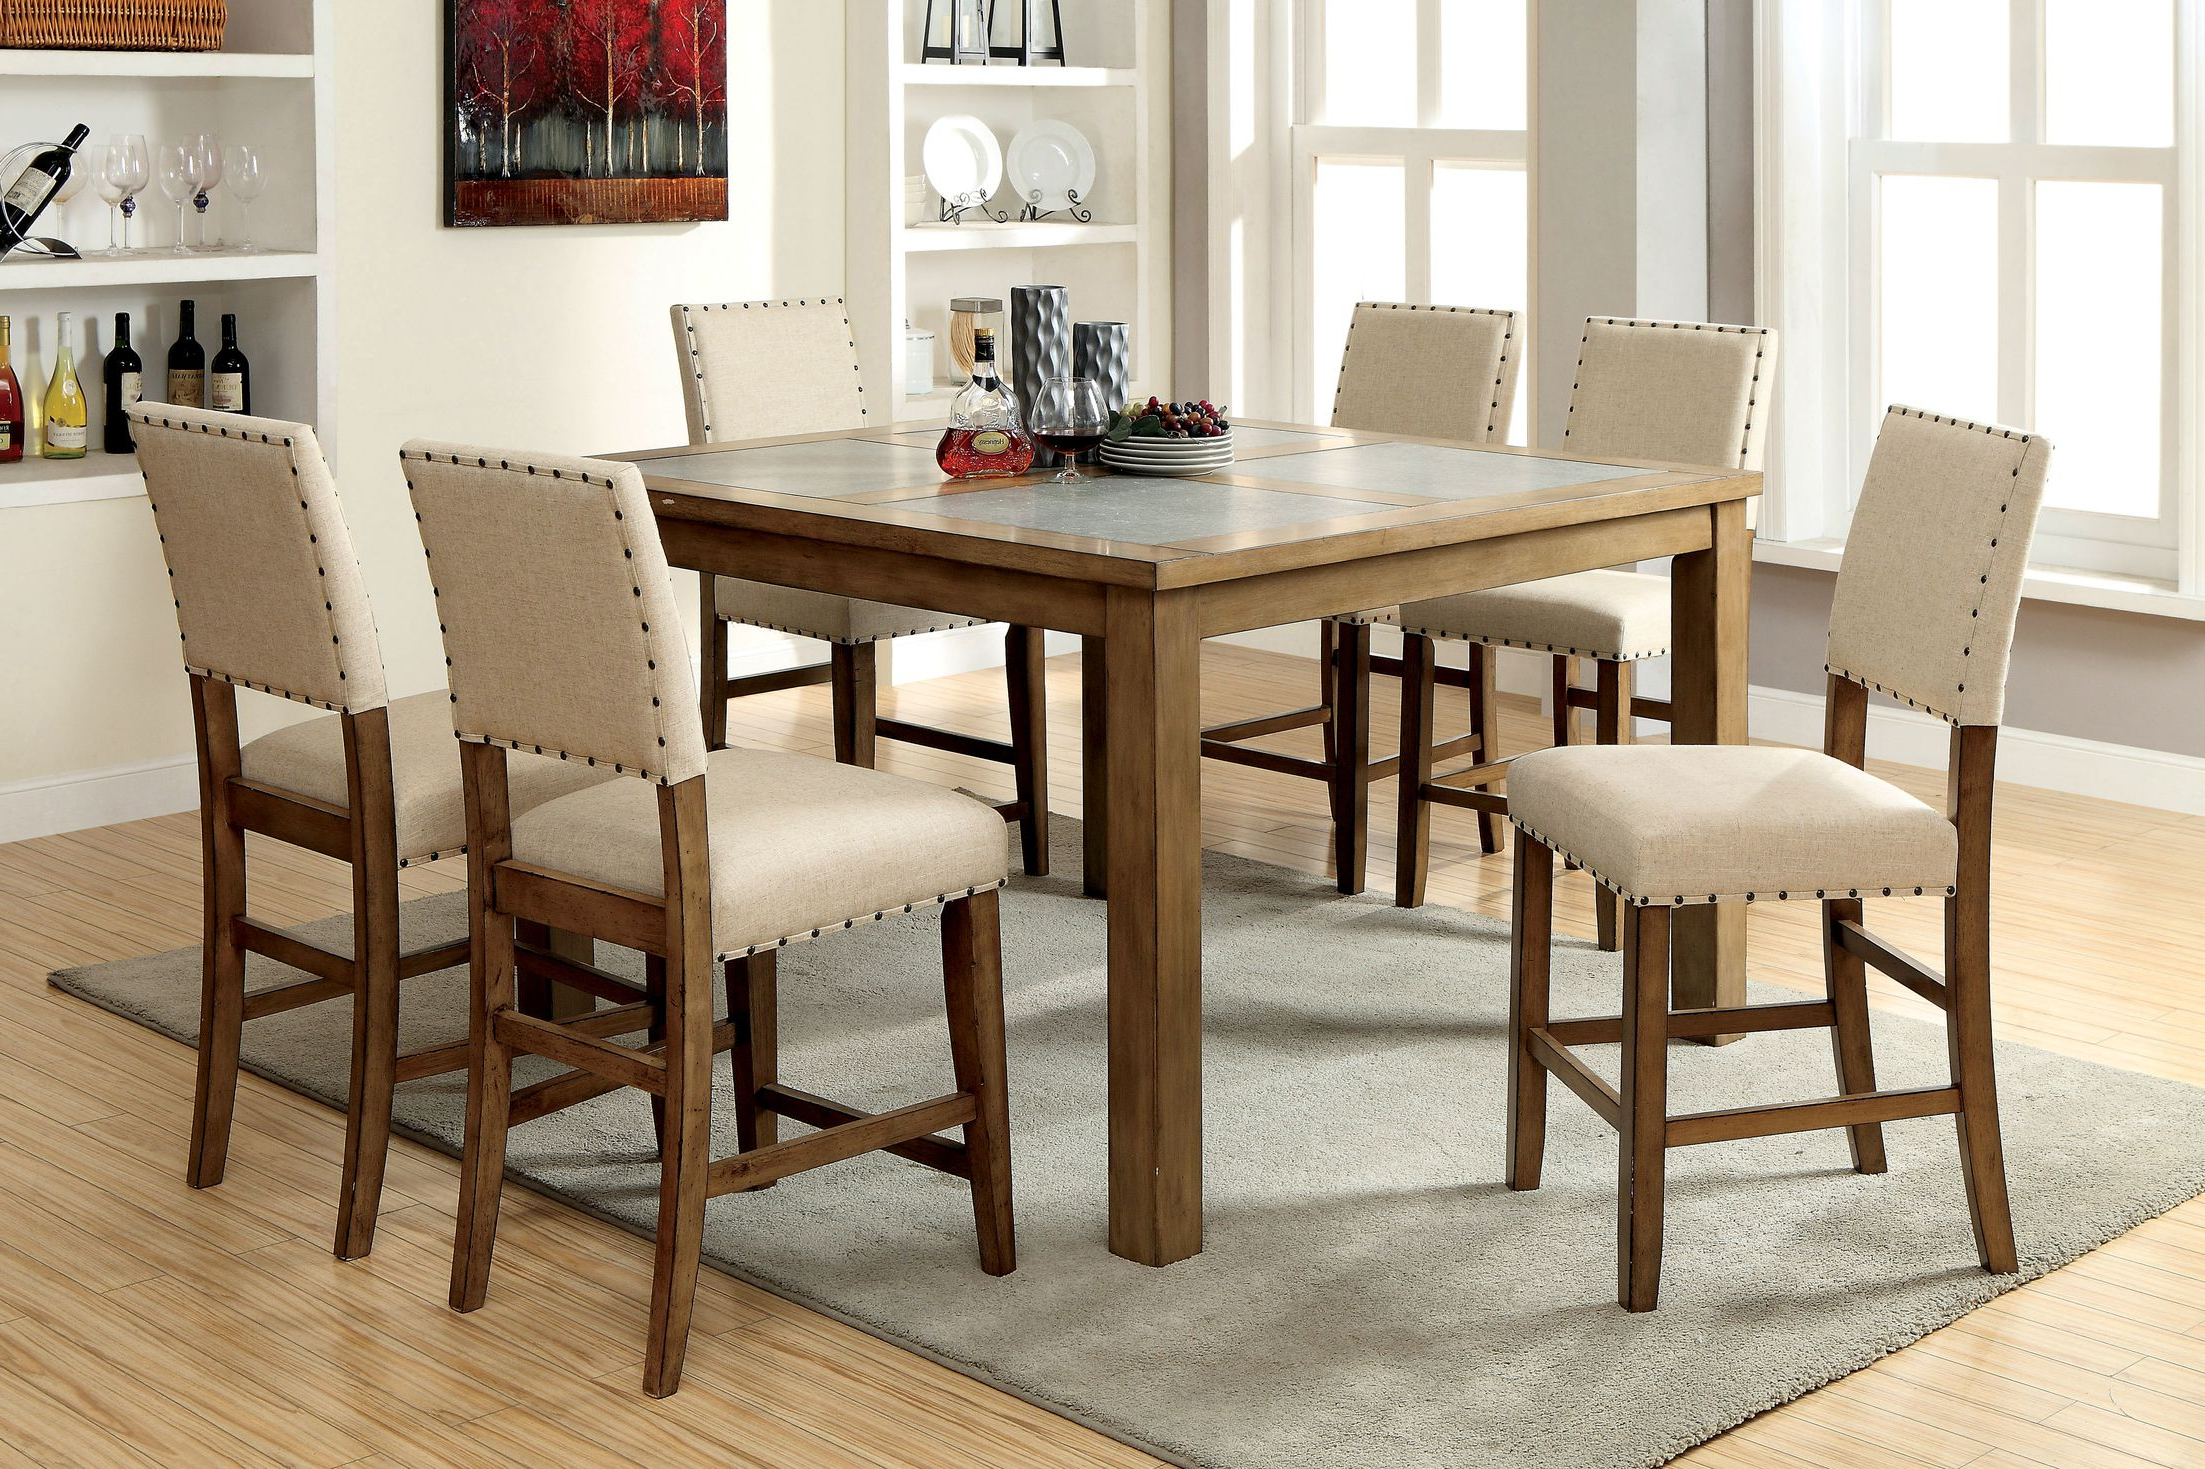 Dining Tables Crafton Counter Height Pub Dining Table March 2019 Throughout Well Known Castellanos Modern 5 Piece Counter Height Dining Sets (View 12 of 25)